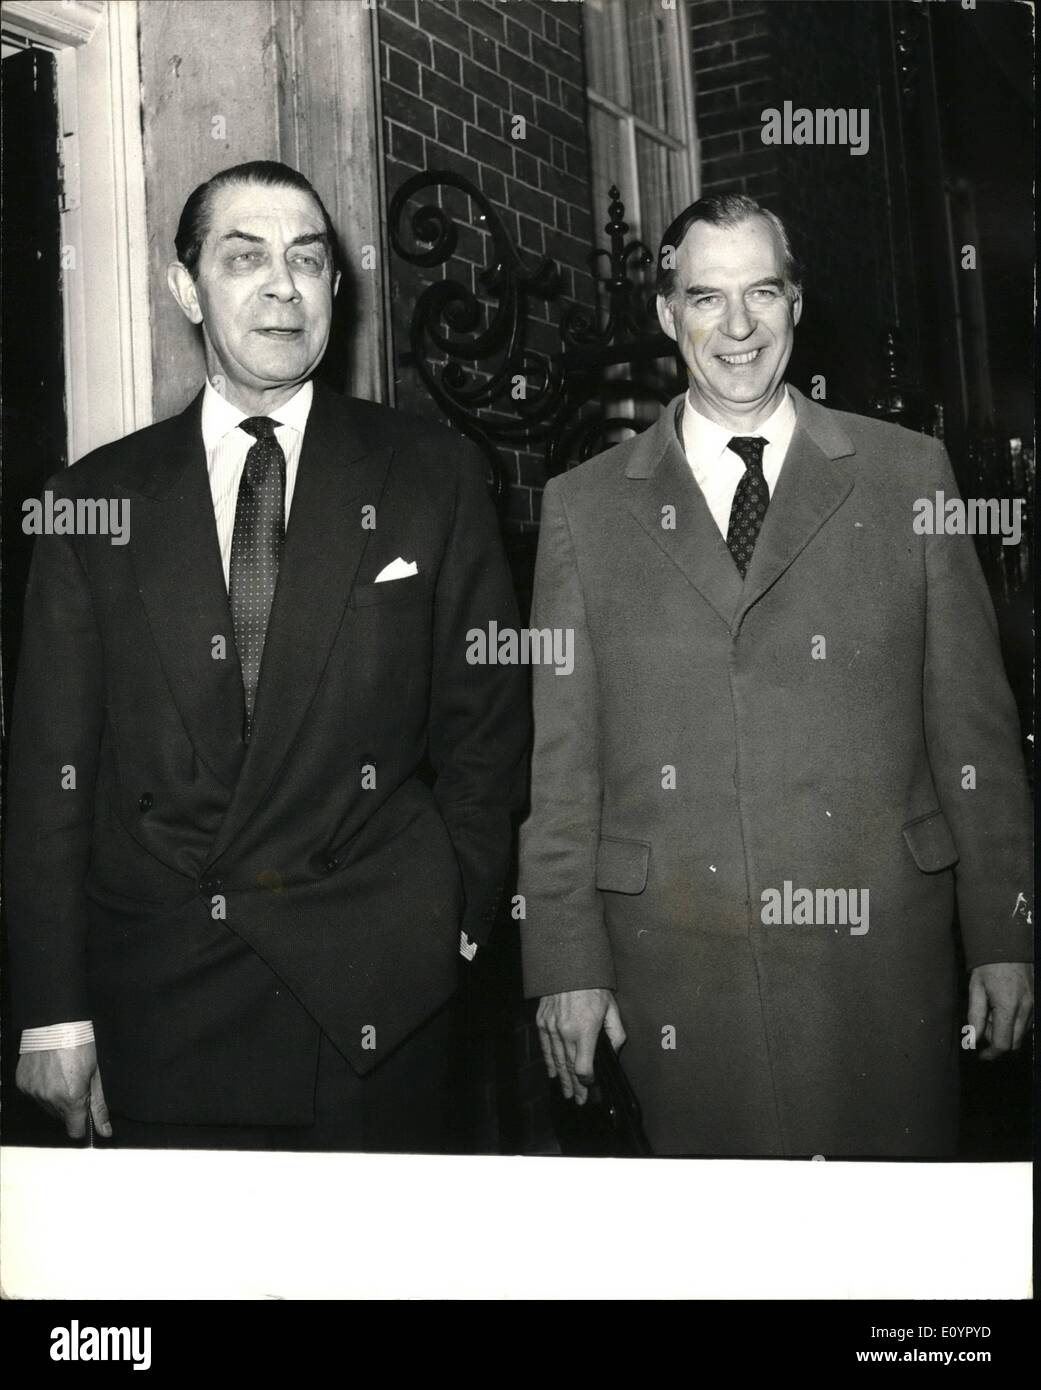 Mar. 03, 1971 - Confederation of British Industry chiefs went to No. 10 Downing Street today to discuss economy eith the Prime Mibnister,Mr Heath. Keystone photo shows: Mr John Partridge on left,President of the C.B.I. and Mr Campbell Adamson,Director General of the C.B.I. arriving at No. 10 Downing Street for the meeting with Mr. Heath this afternoon - Stock Image